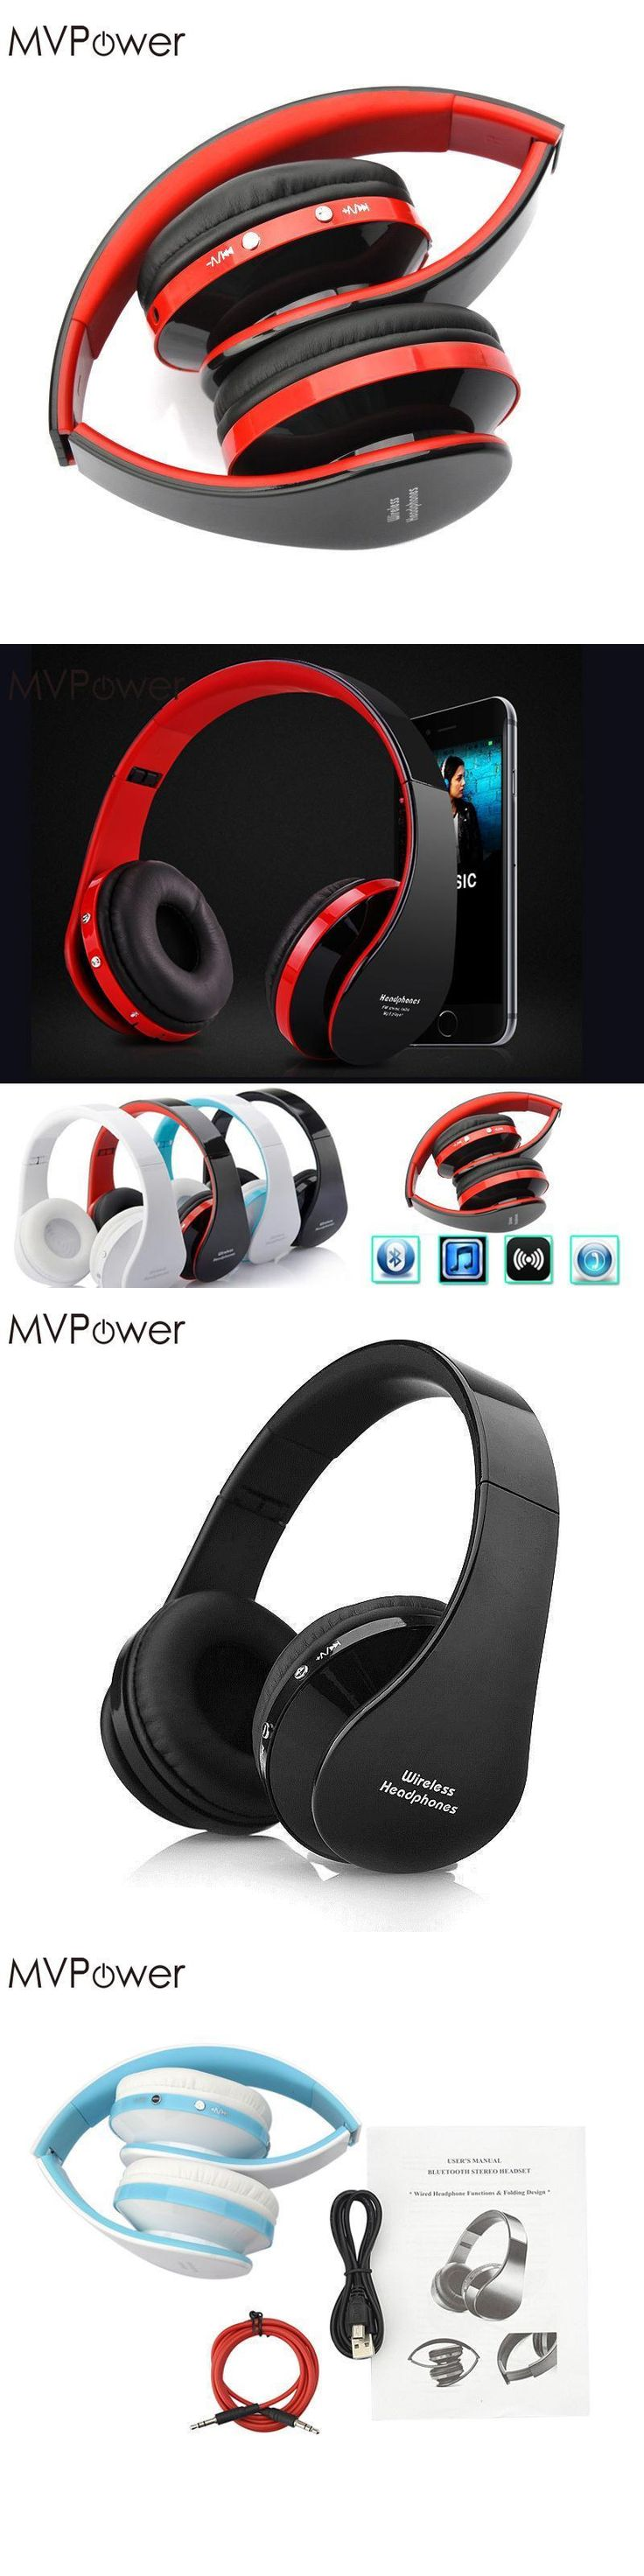 MVpower Portable Wireless Bluetooth Headset Gamer Cordless Headphones Stereo Music Big Earphone For Samsung s6 s7 for iphone